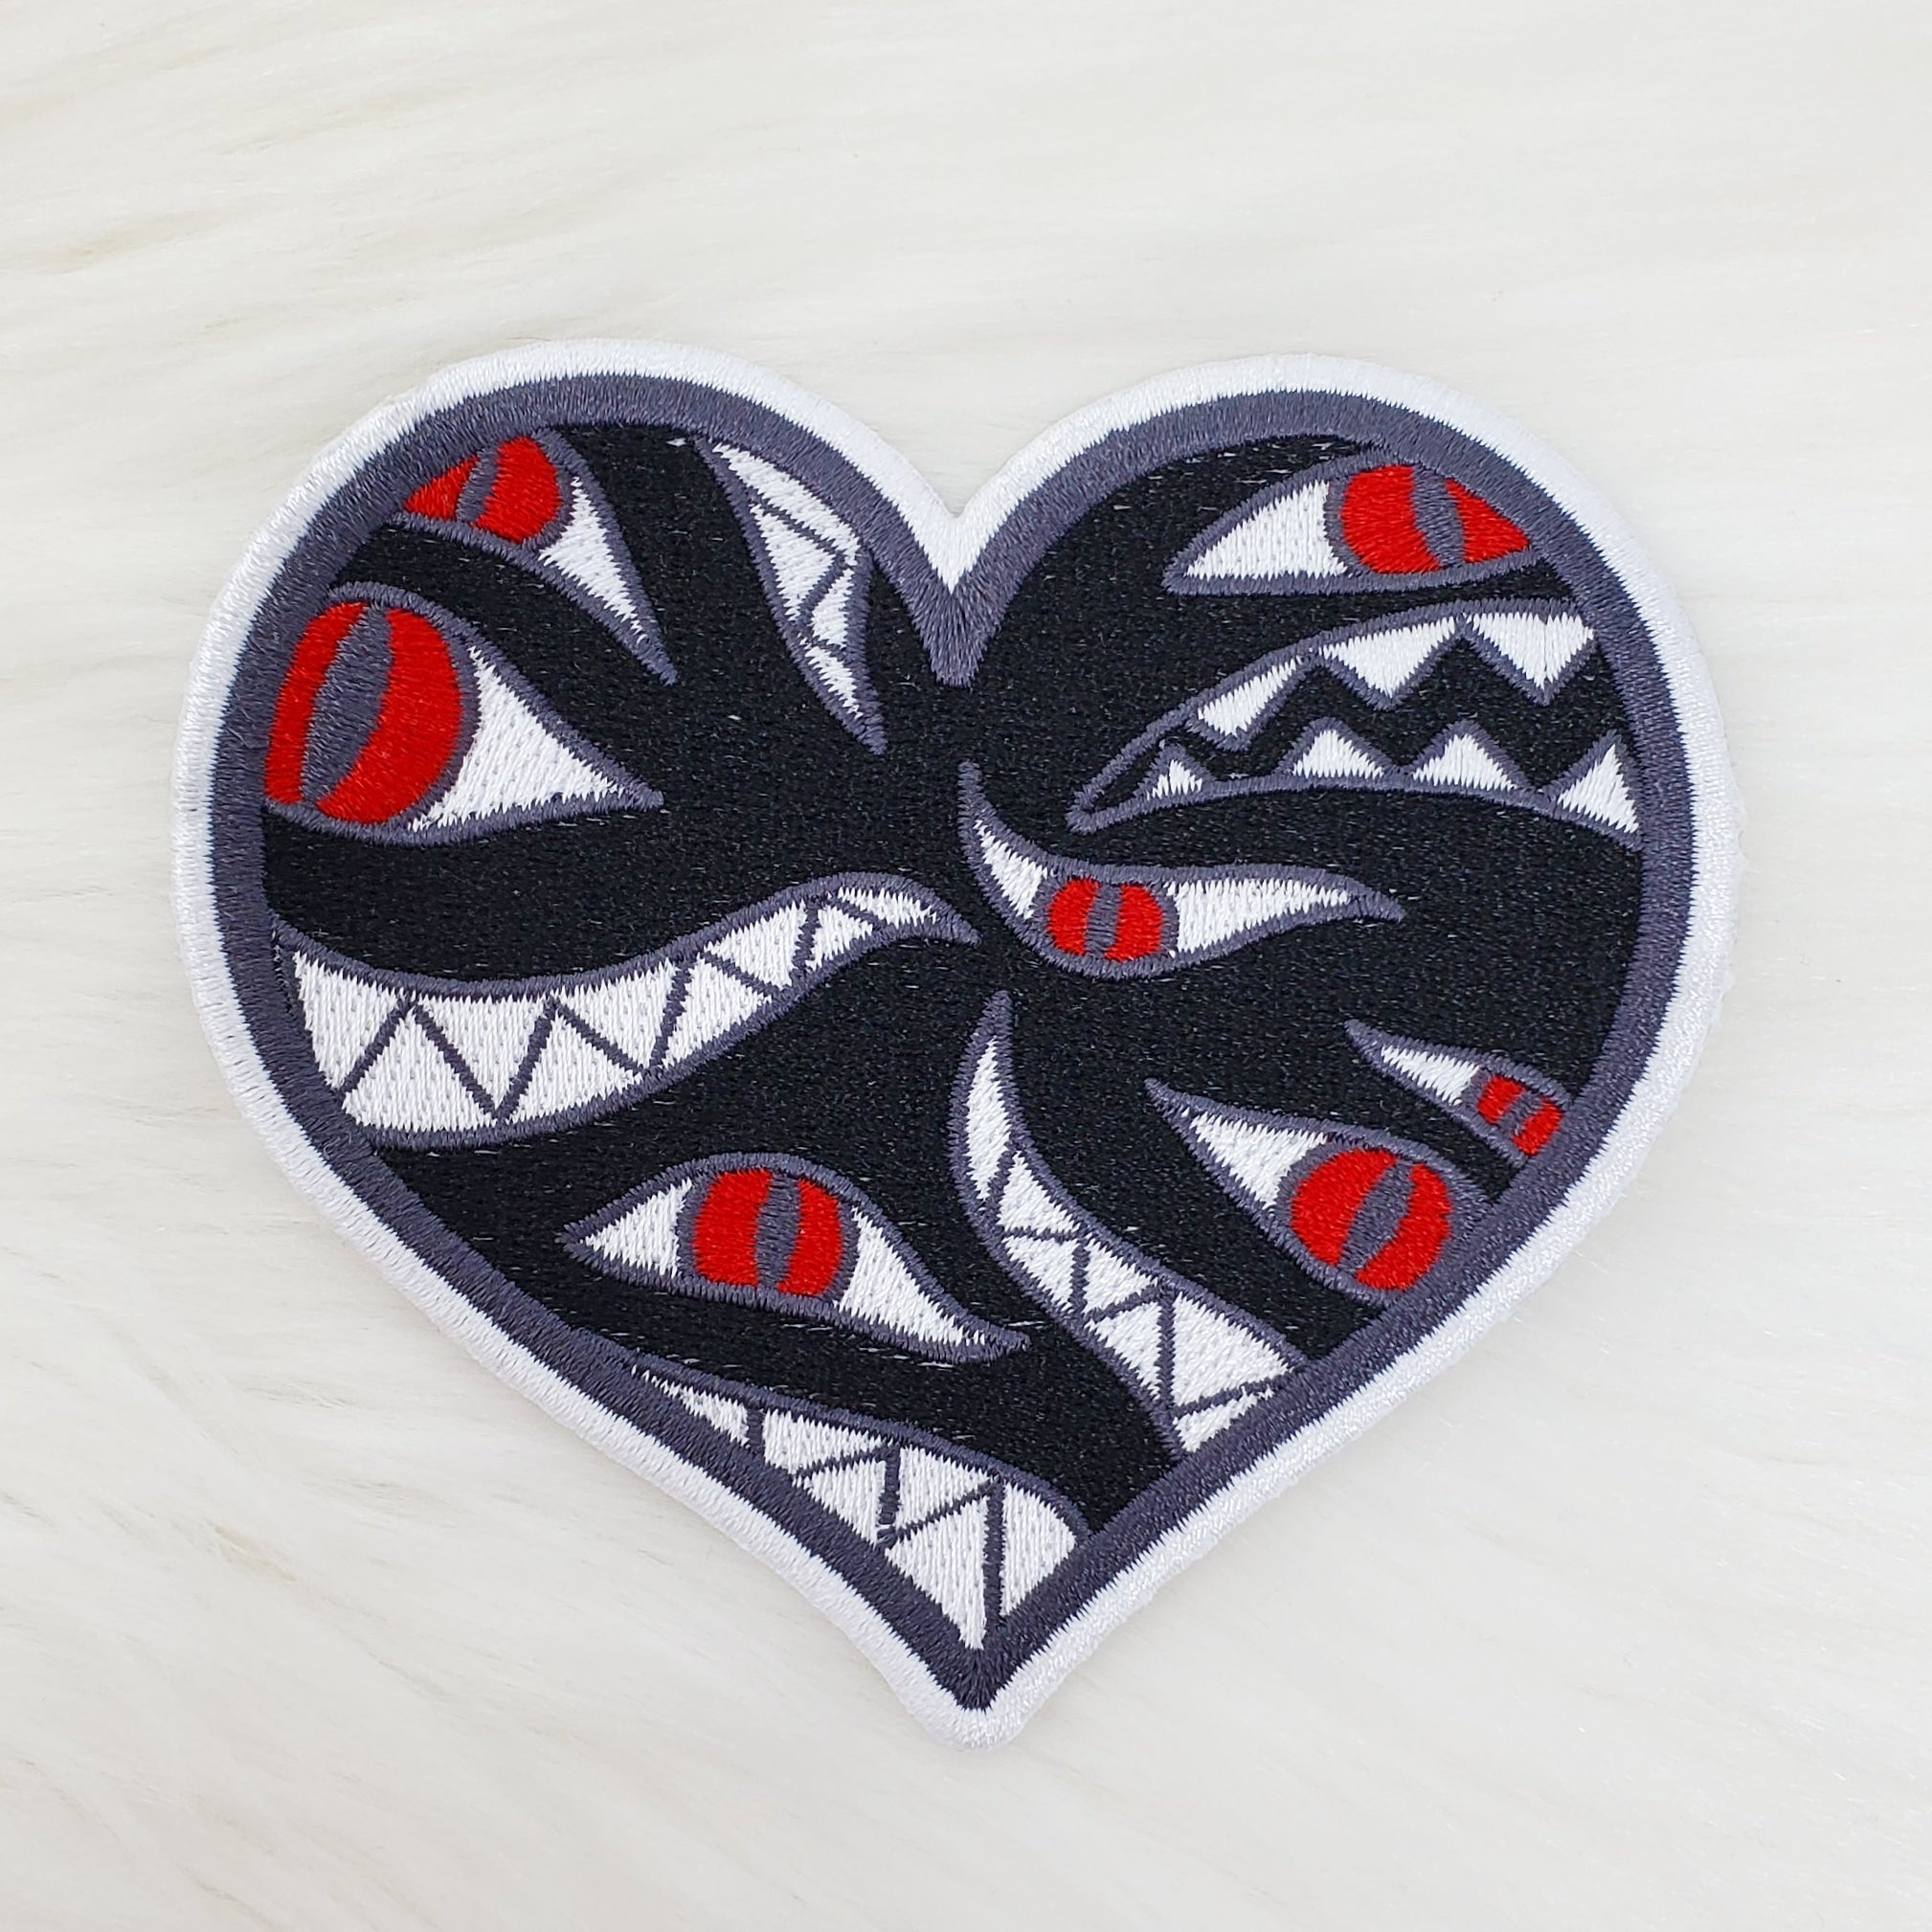 ♡ Spiral of Truth Iron-On Patch ♡